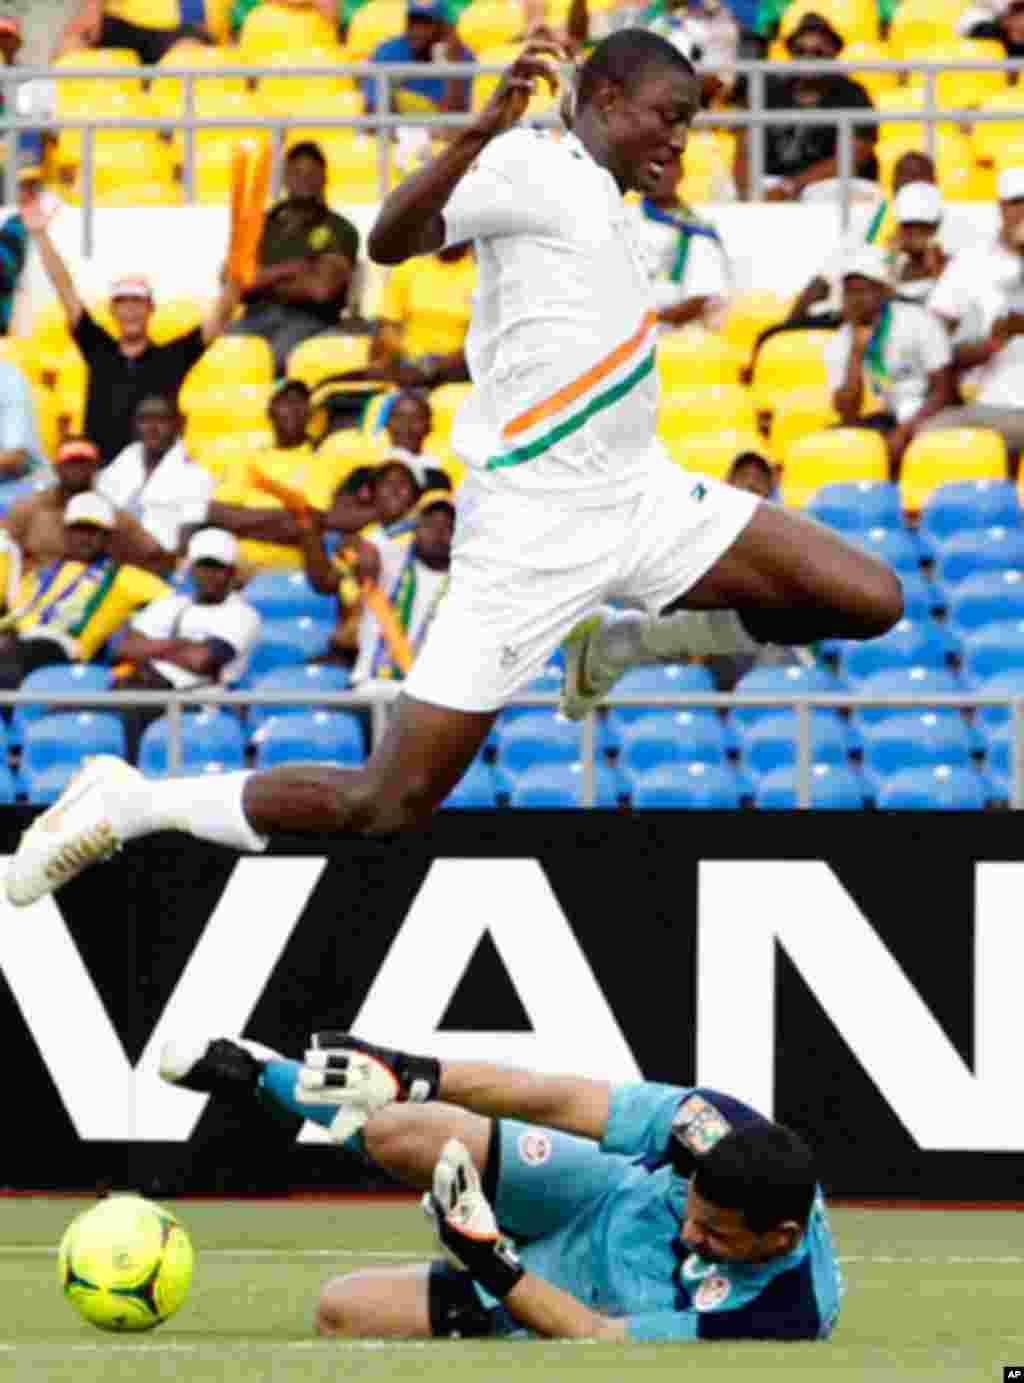 Niger's Moussa jumps over Tunisia's Ayem during their African Cup of Nations soccer match in Libreville